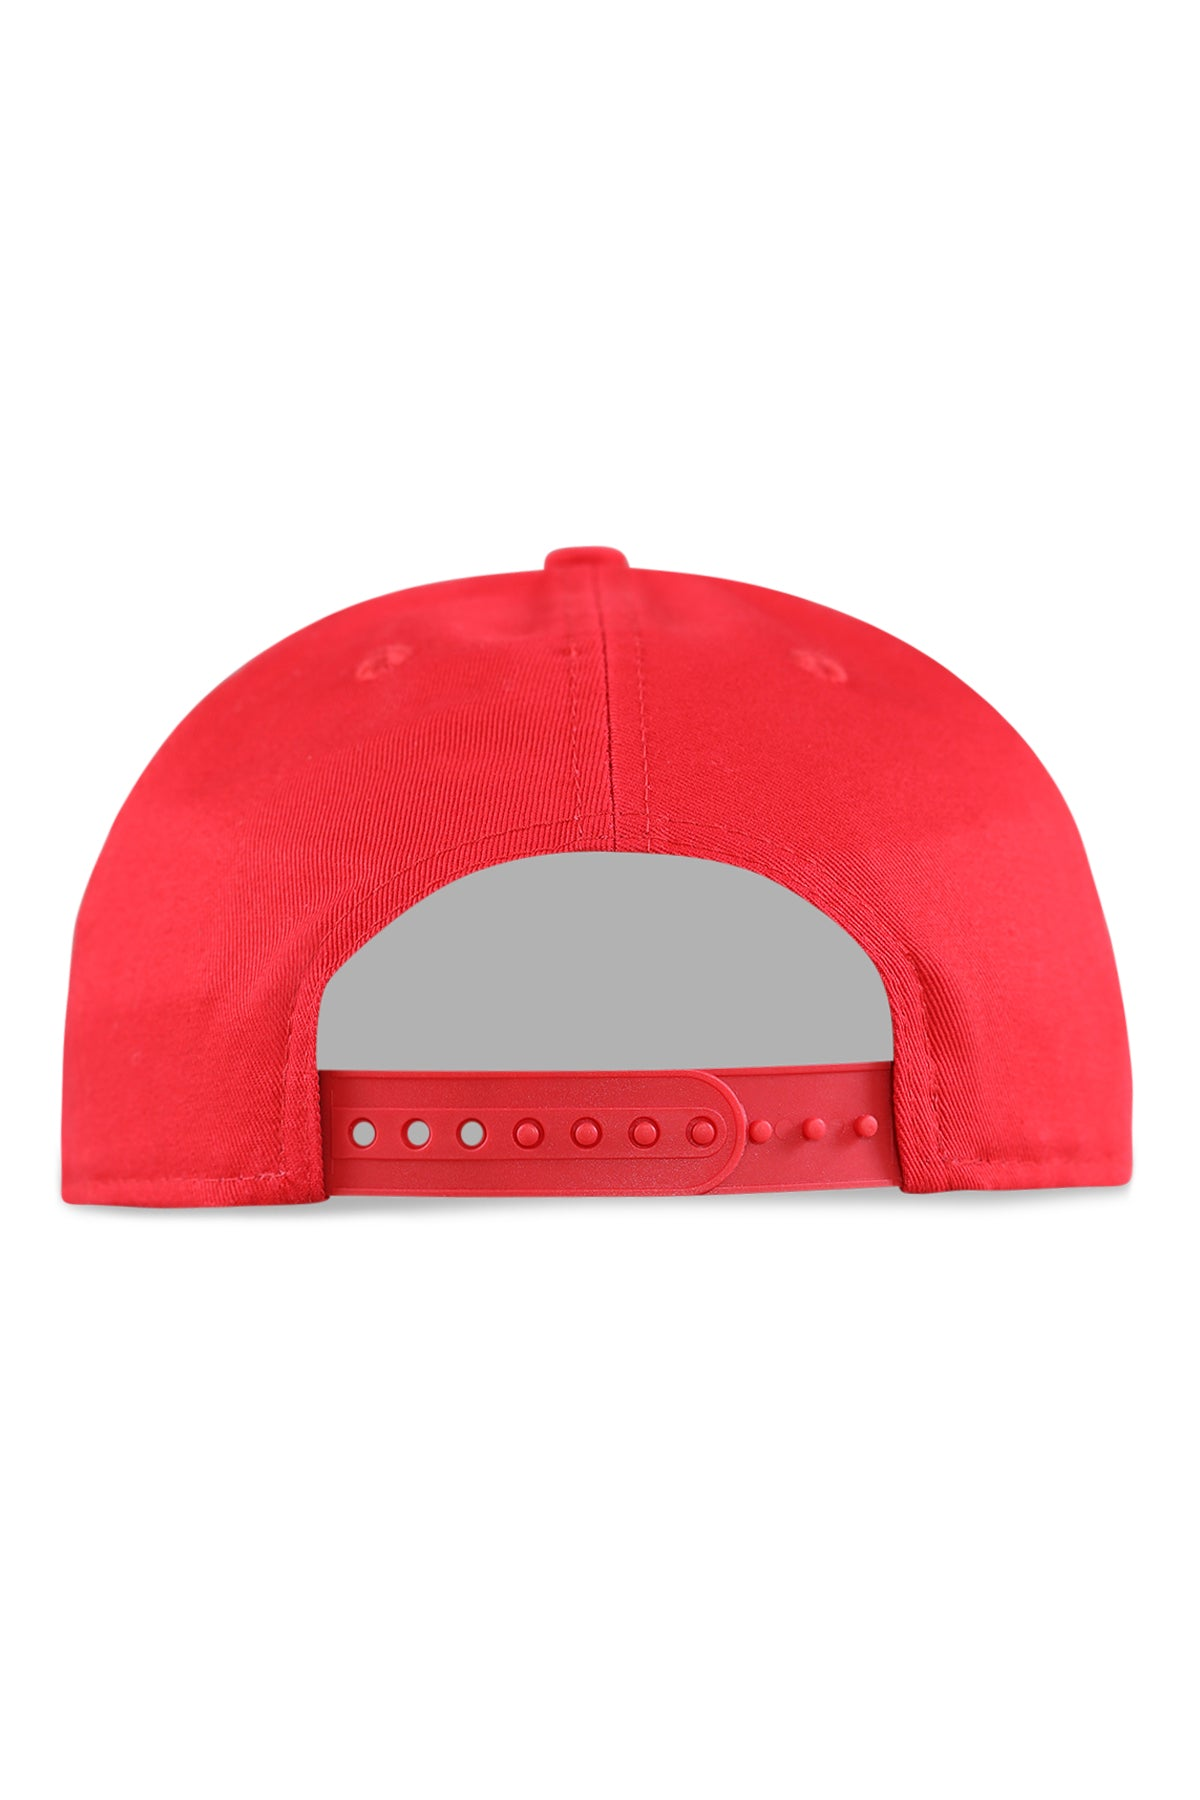 New Era Bulls Golfer Script FD Red/Grey Snapback Back